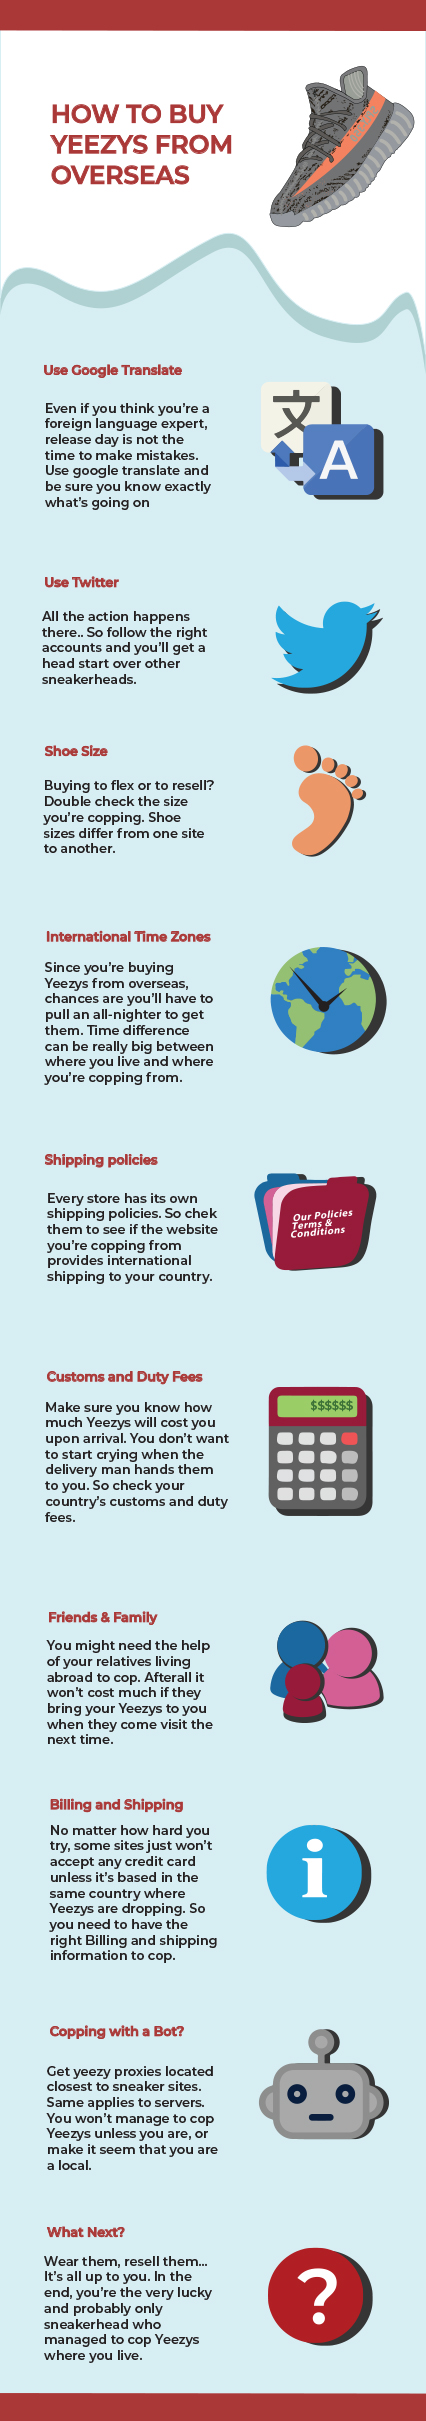 Buy Yeezys from overseas Info graphic